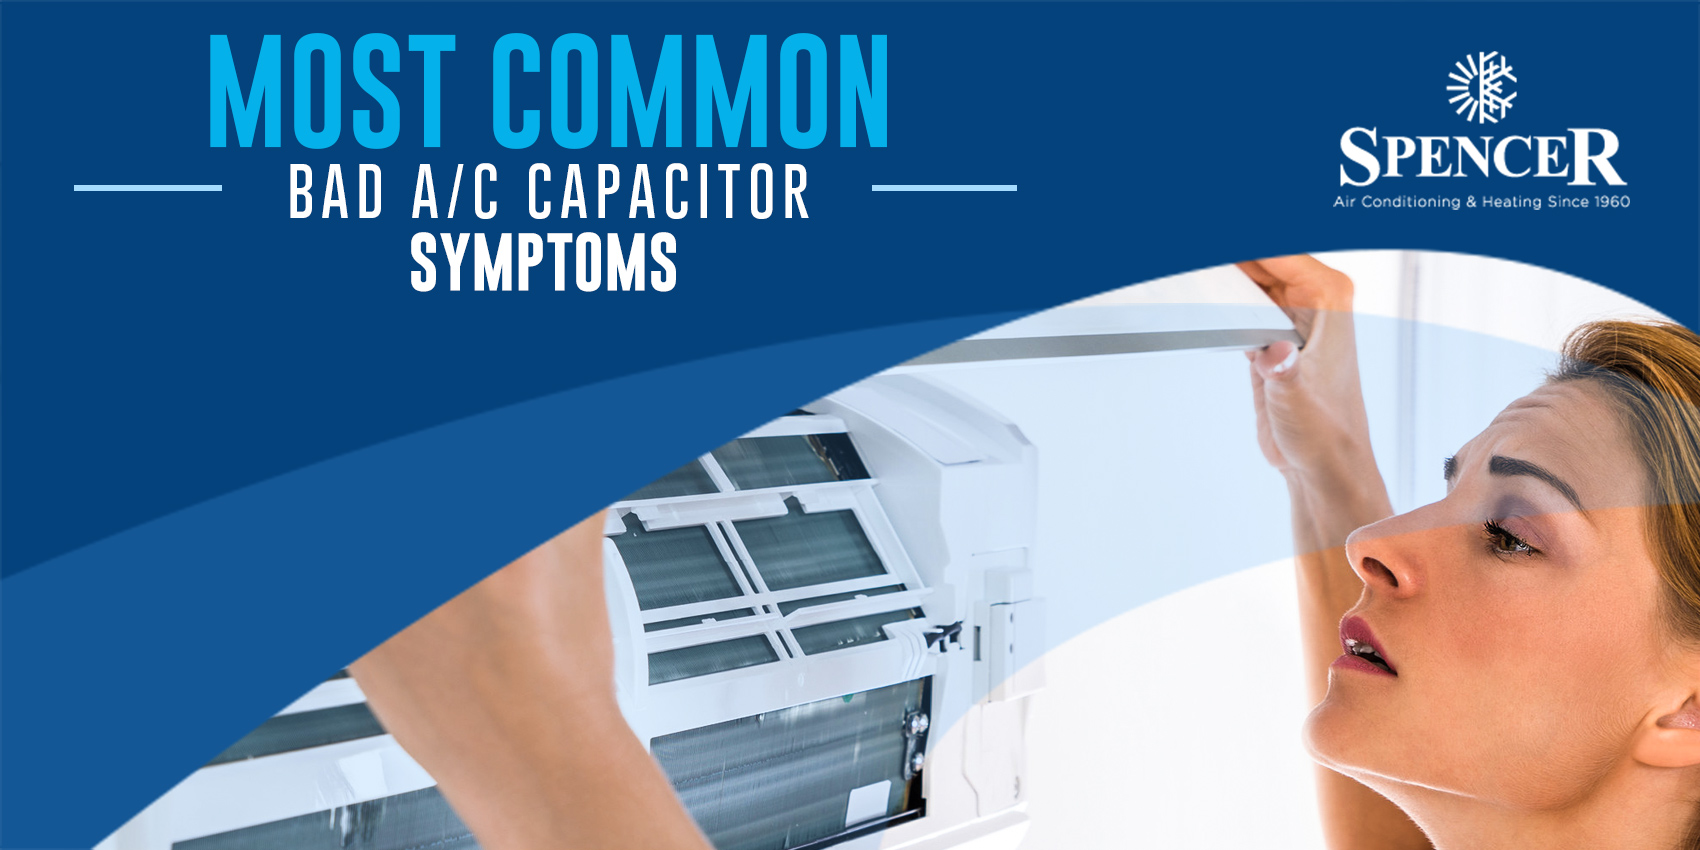 Most Common Bad A/C Capacitor Symptoms